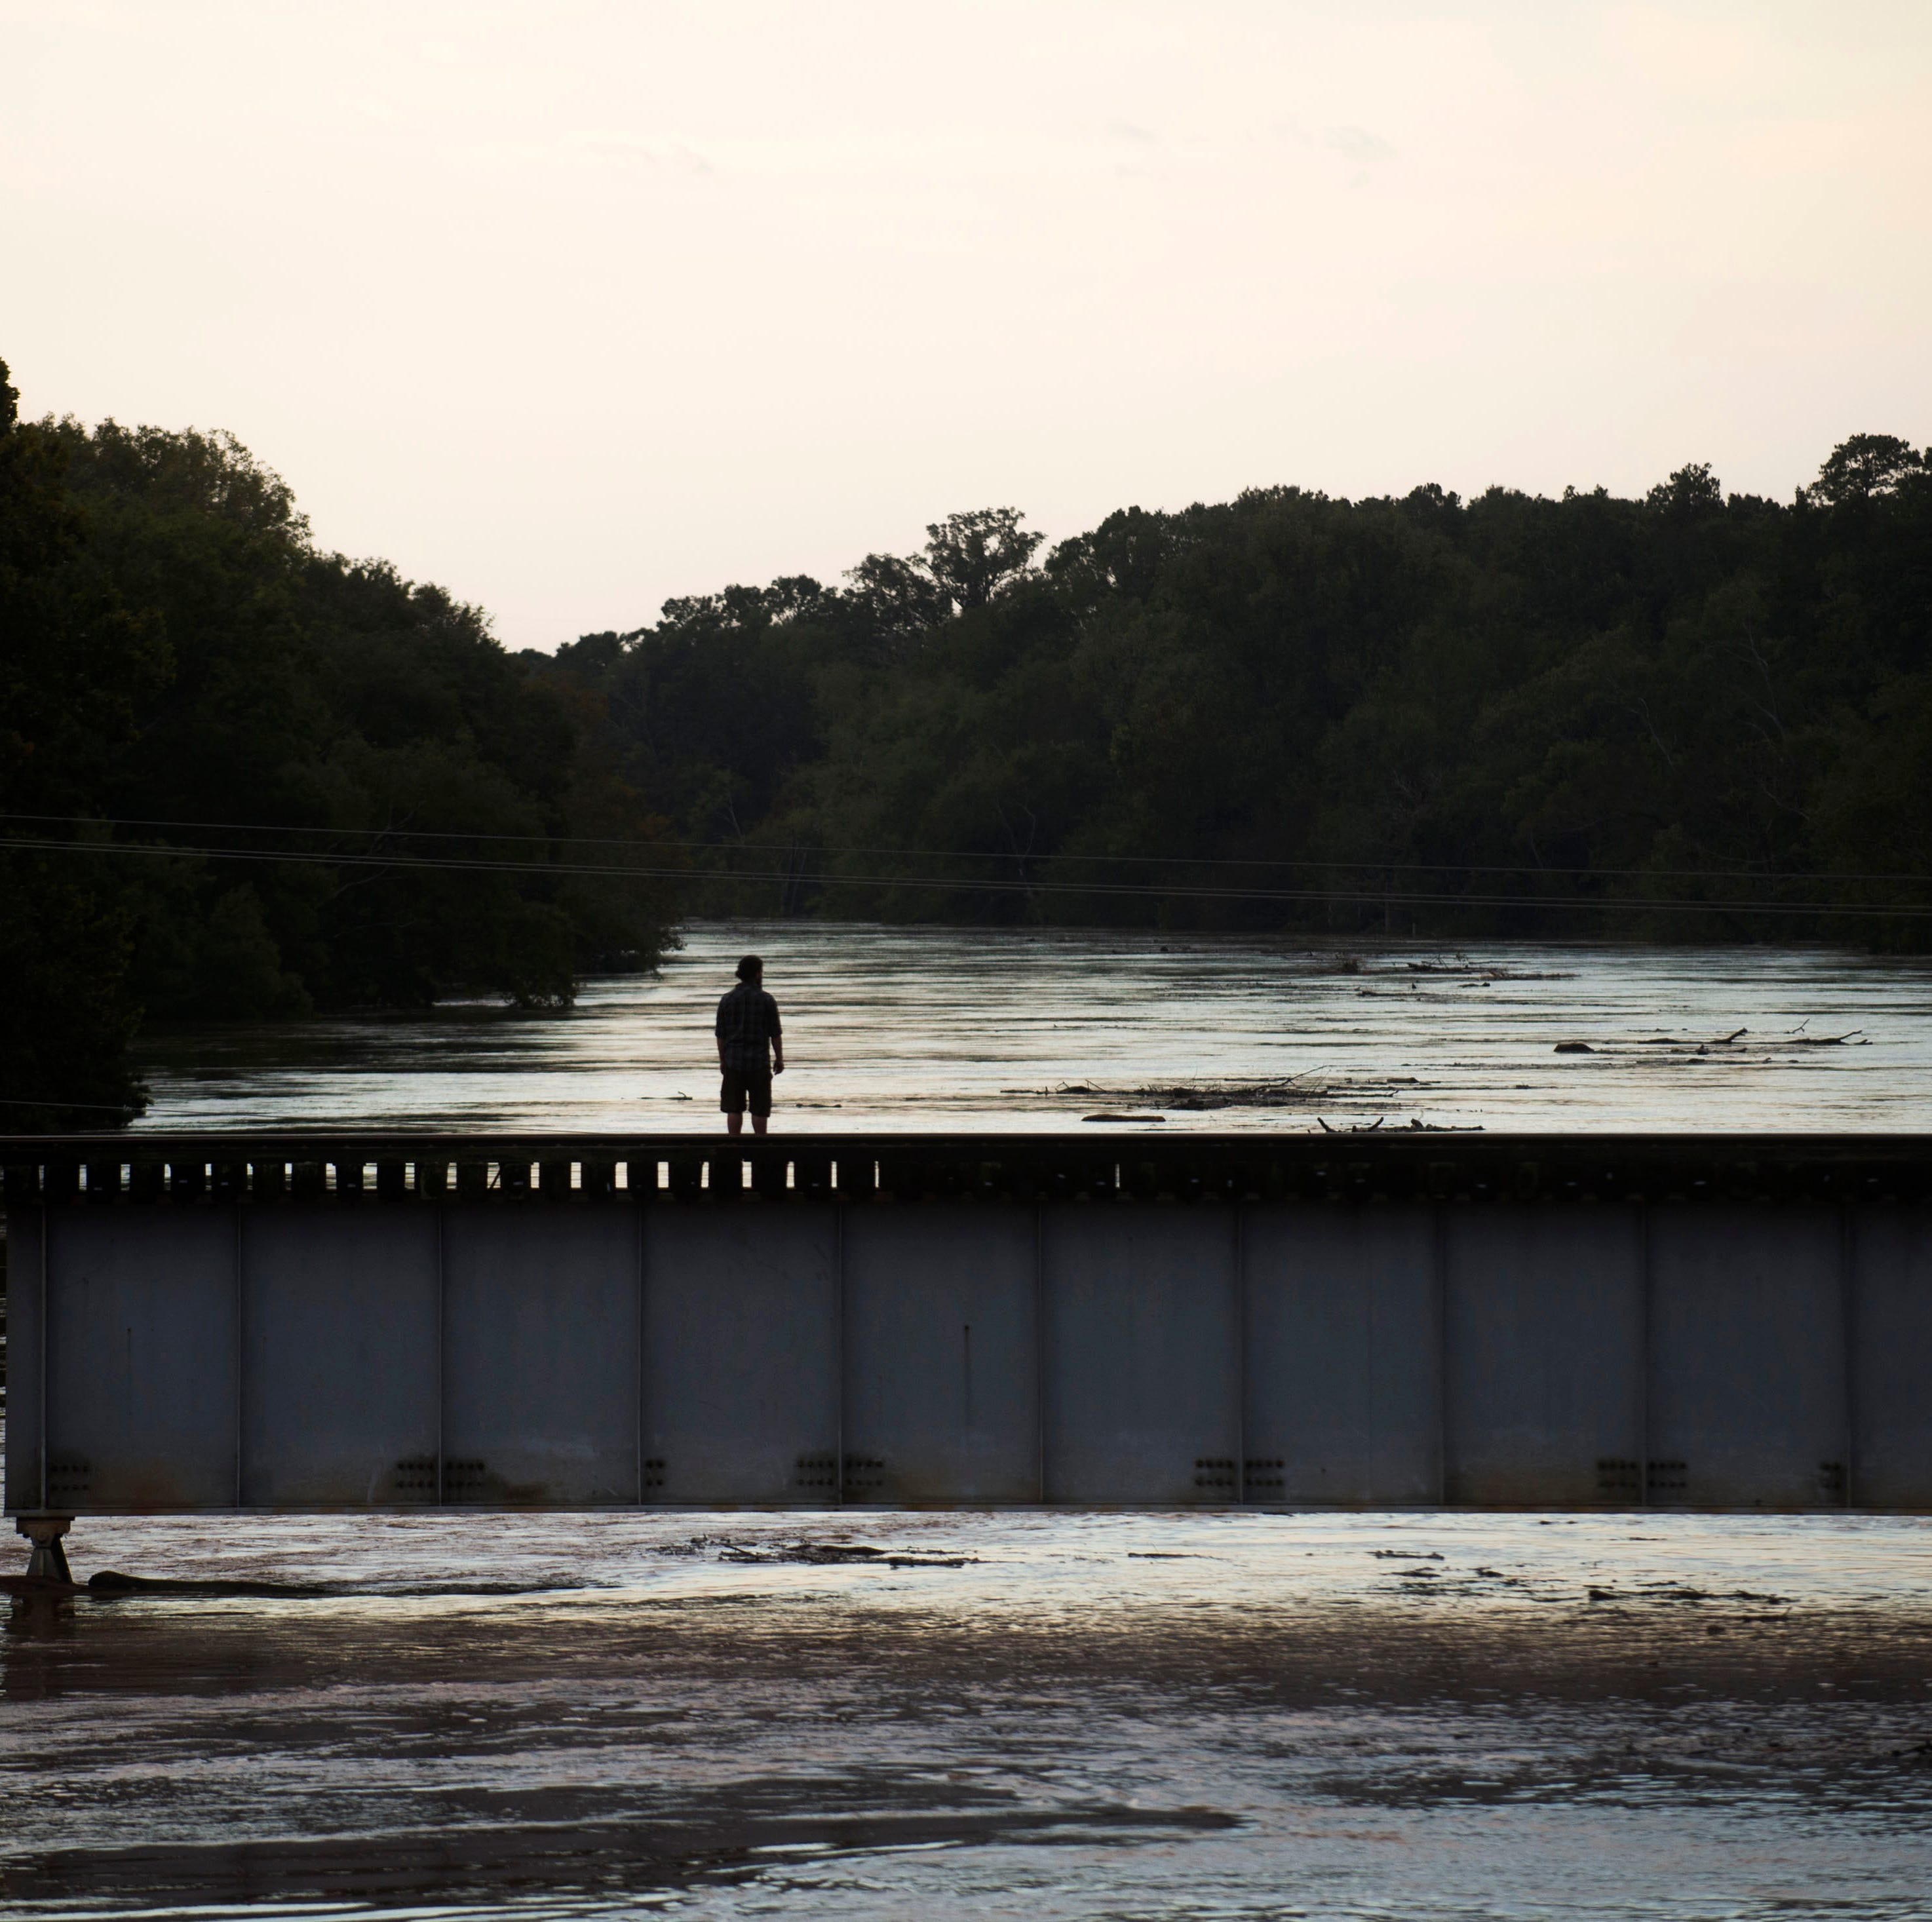 Cape Fear River hits major flood stage near Fayetteville, NC as Florence's impact lingers